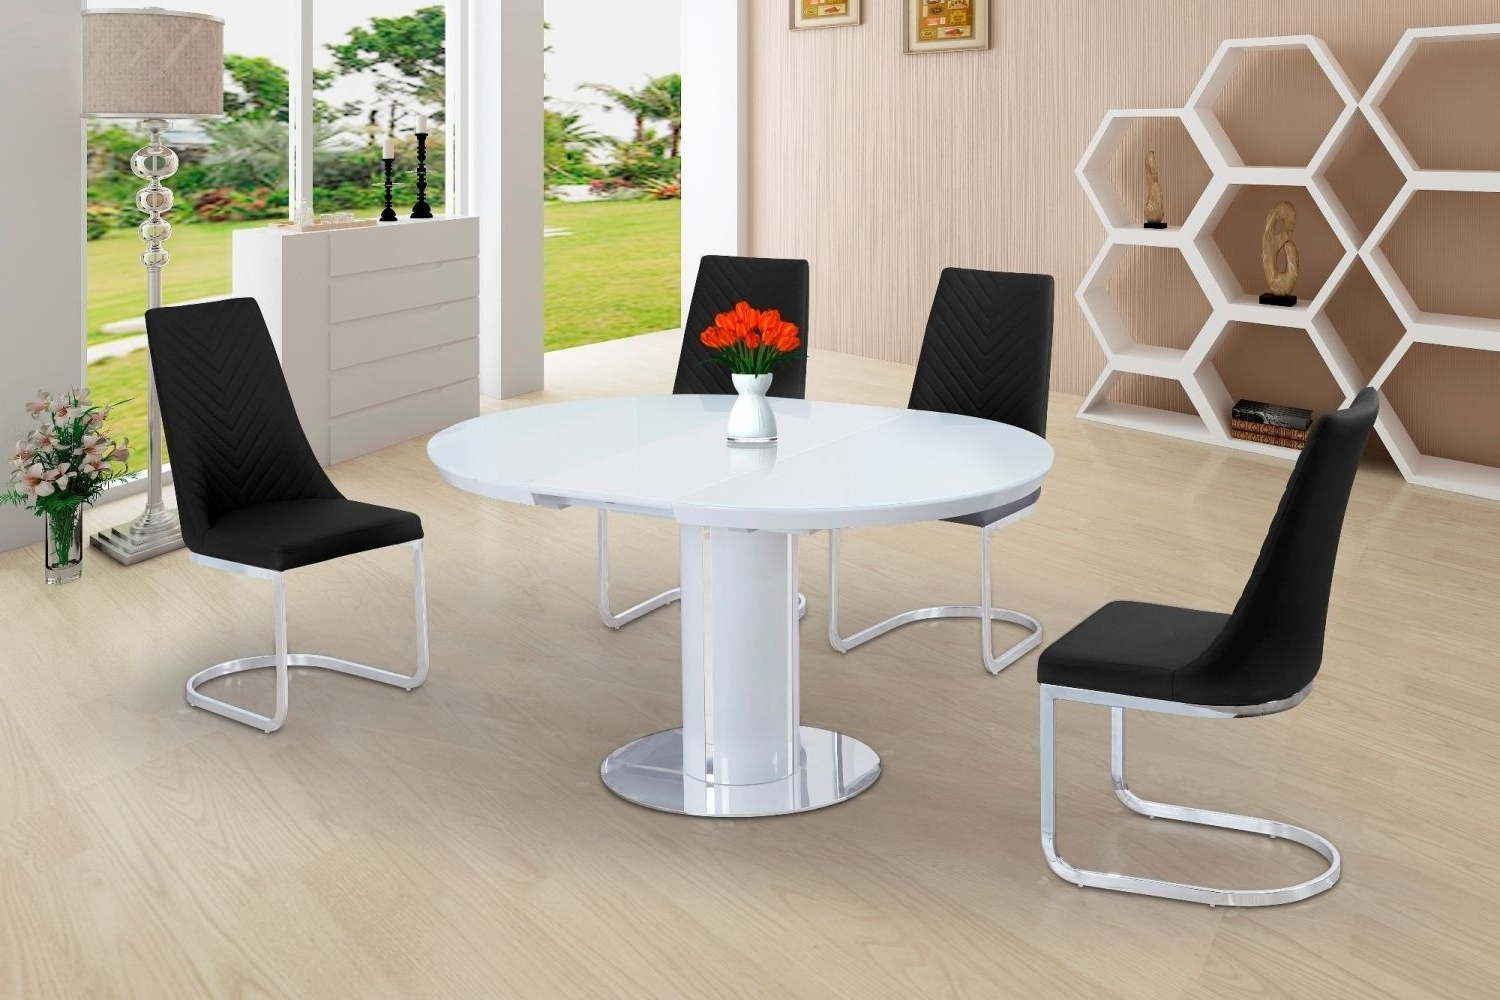 Well Known White Gloss Extendable Dining Tables Throughout Eclipse Round Oval Gloss & Glass Extending 110 To 145 Cm Dining (View 17 of 25)